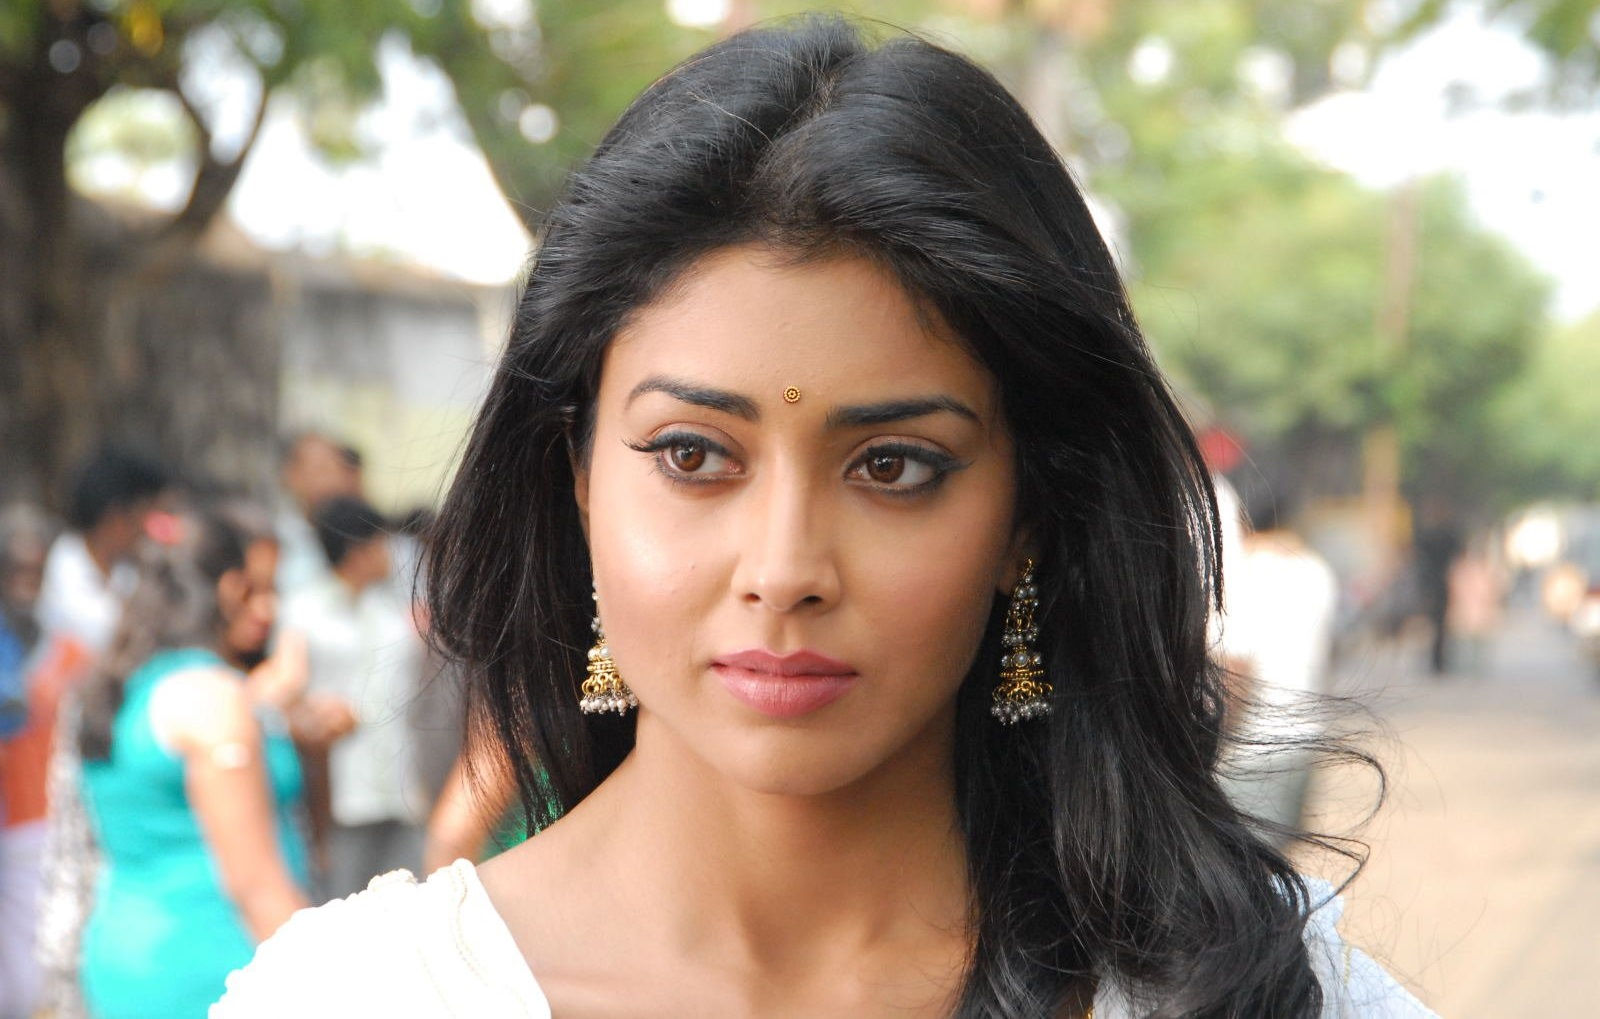 shriya saran wallpaper and background image | 1600x1019 | id:310460